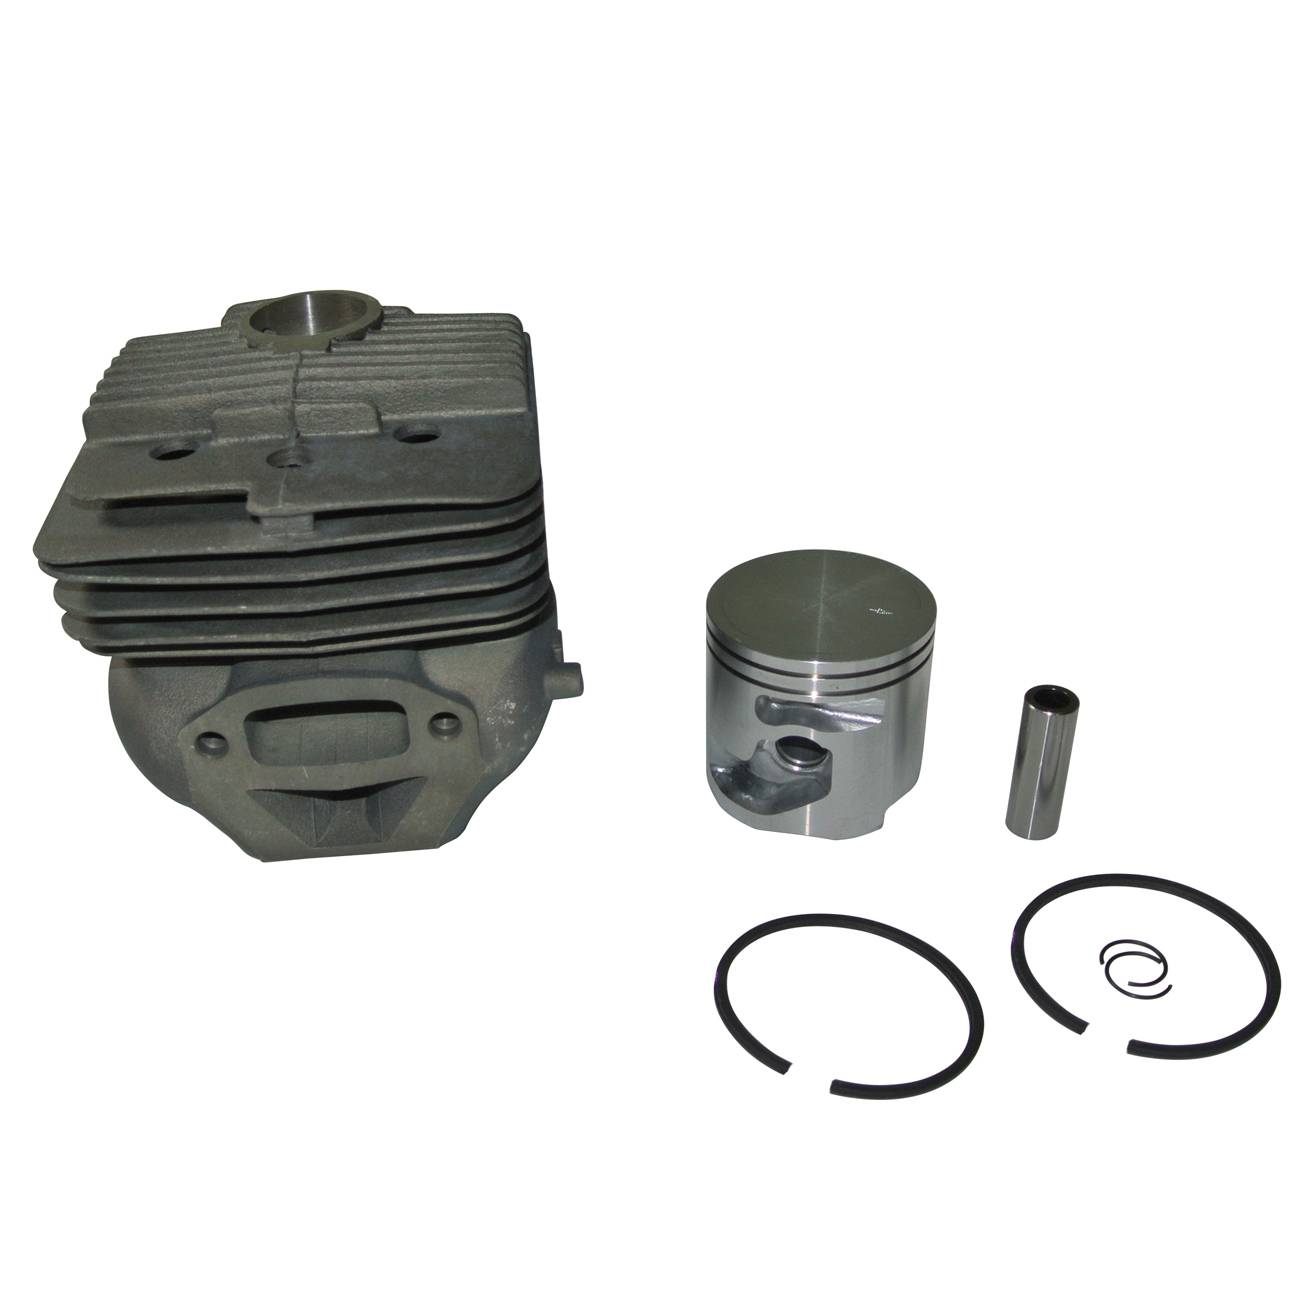 56mm Cylinder & Piston Kit For Husqvarna K960 K970 Cutoff Saws 544 93 56-03 changchai 4l68 engine parts the set of piston piston rings piston pins